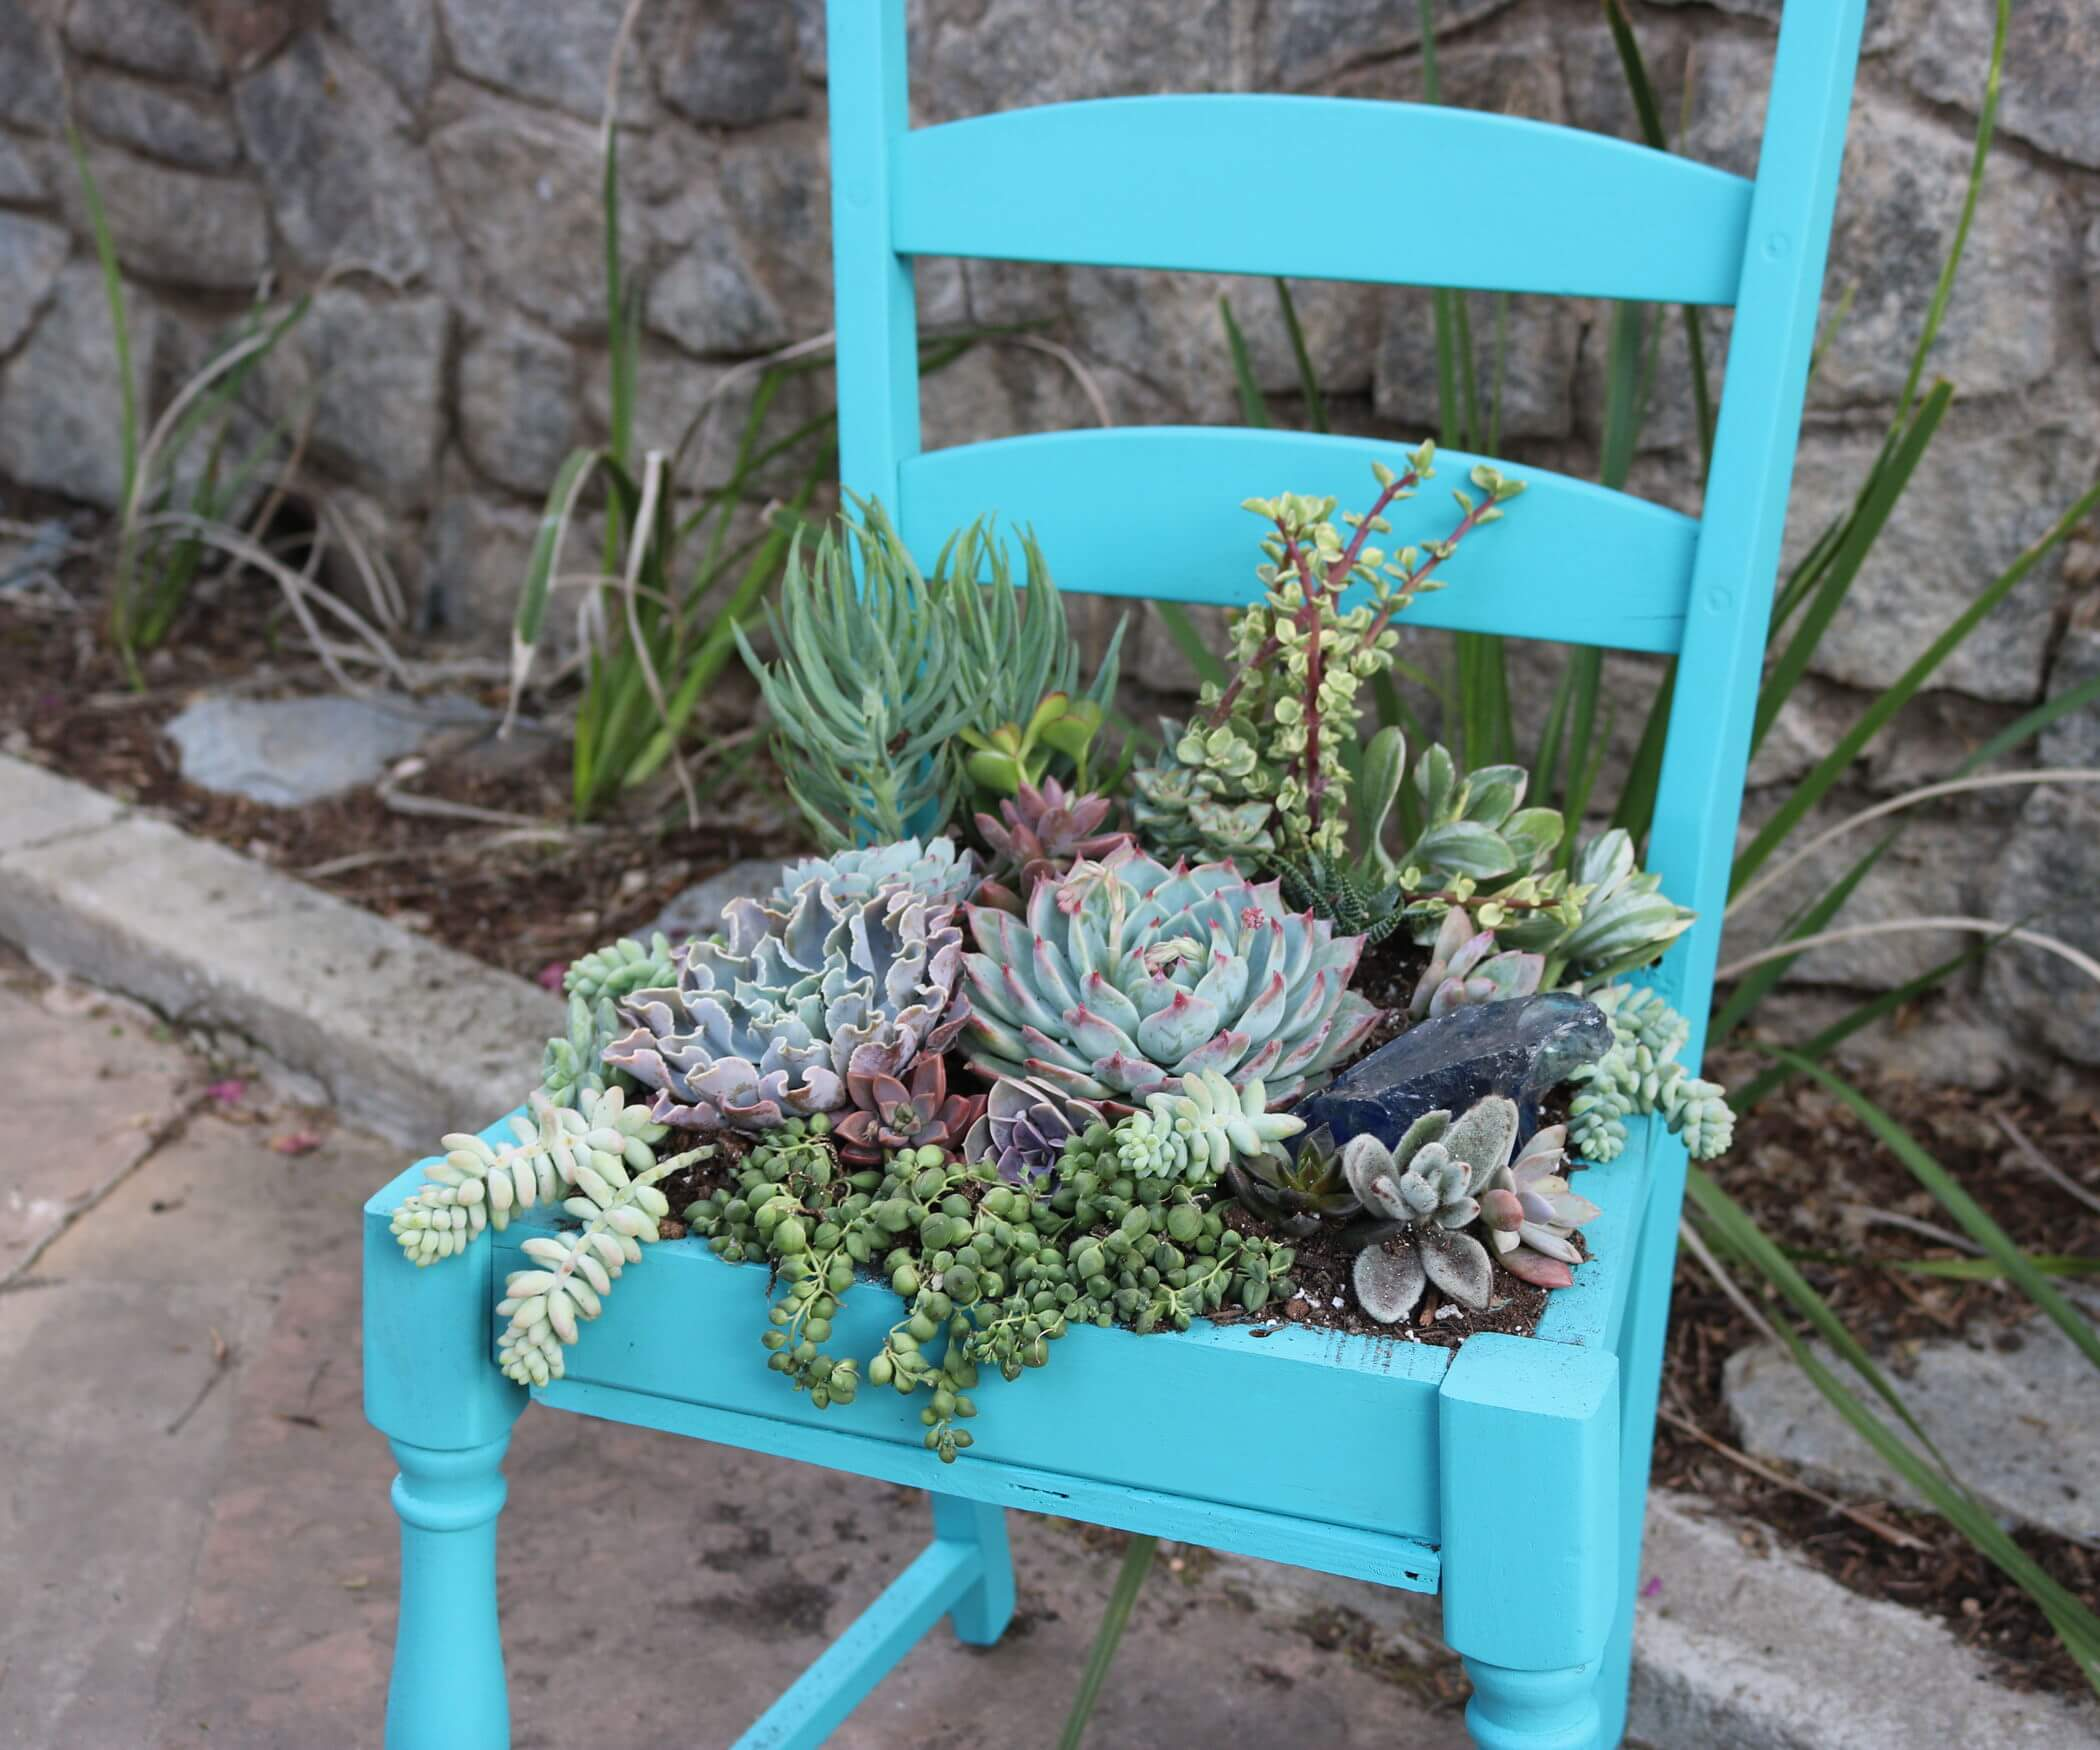 Give a Succulent Garden Its Own Seat